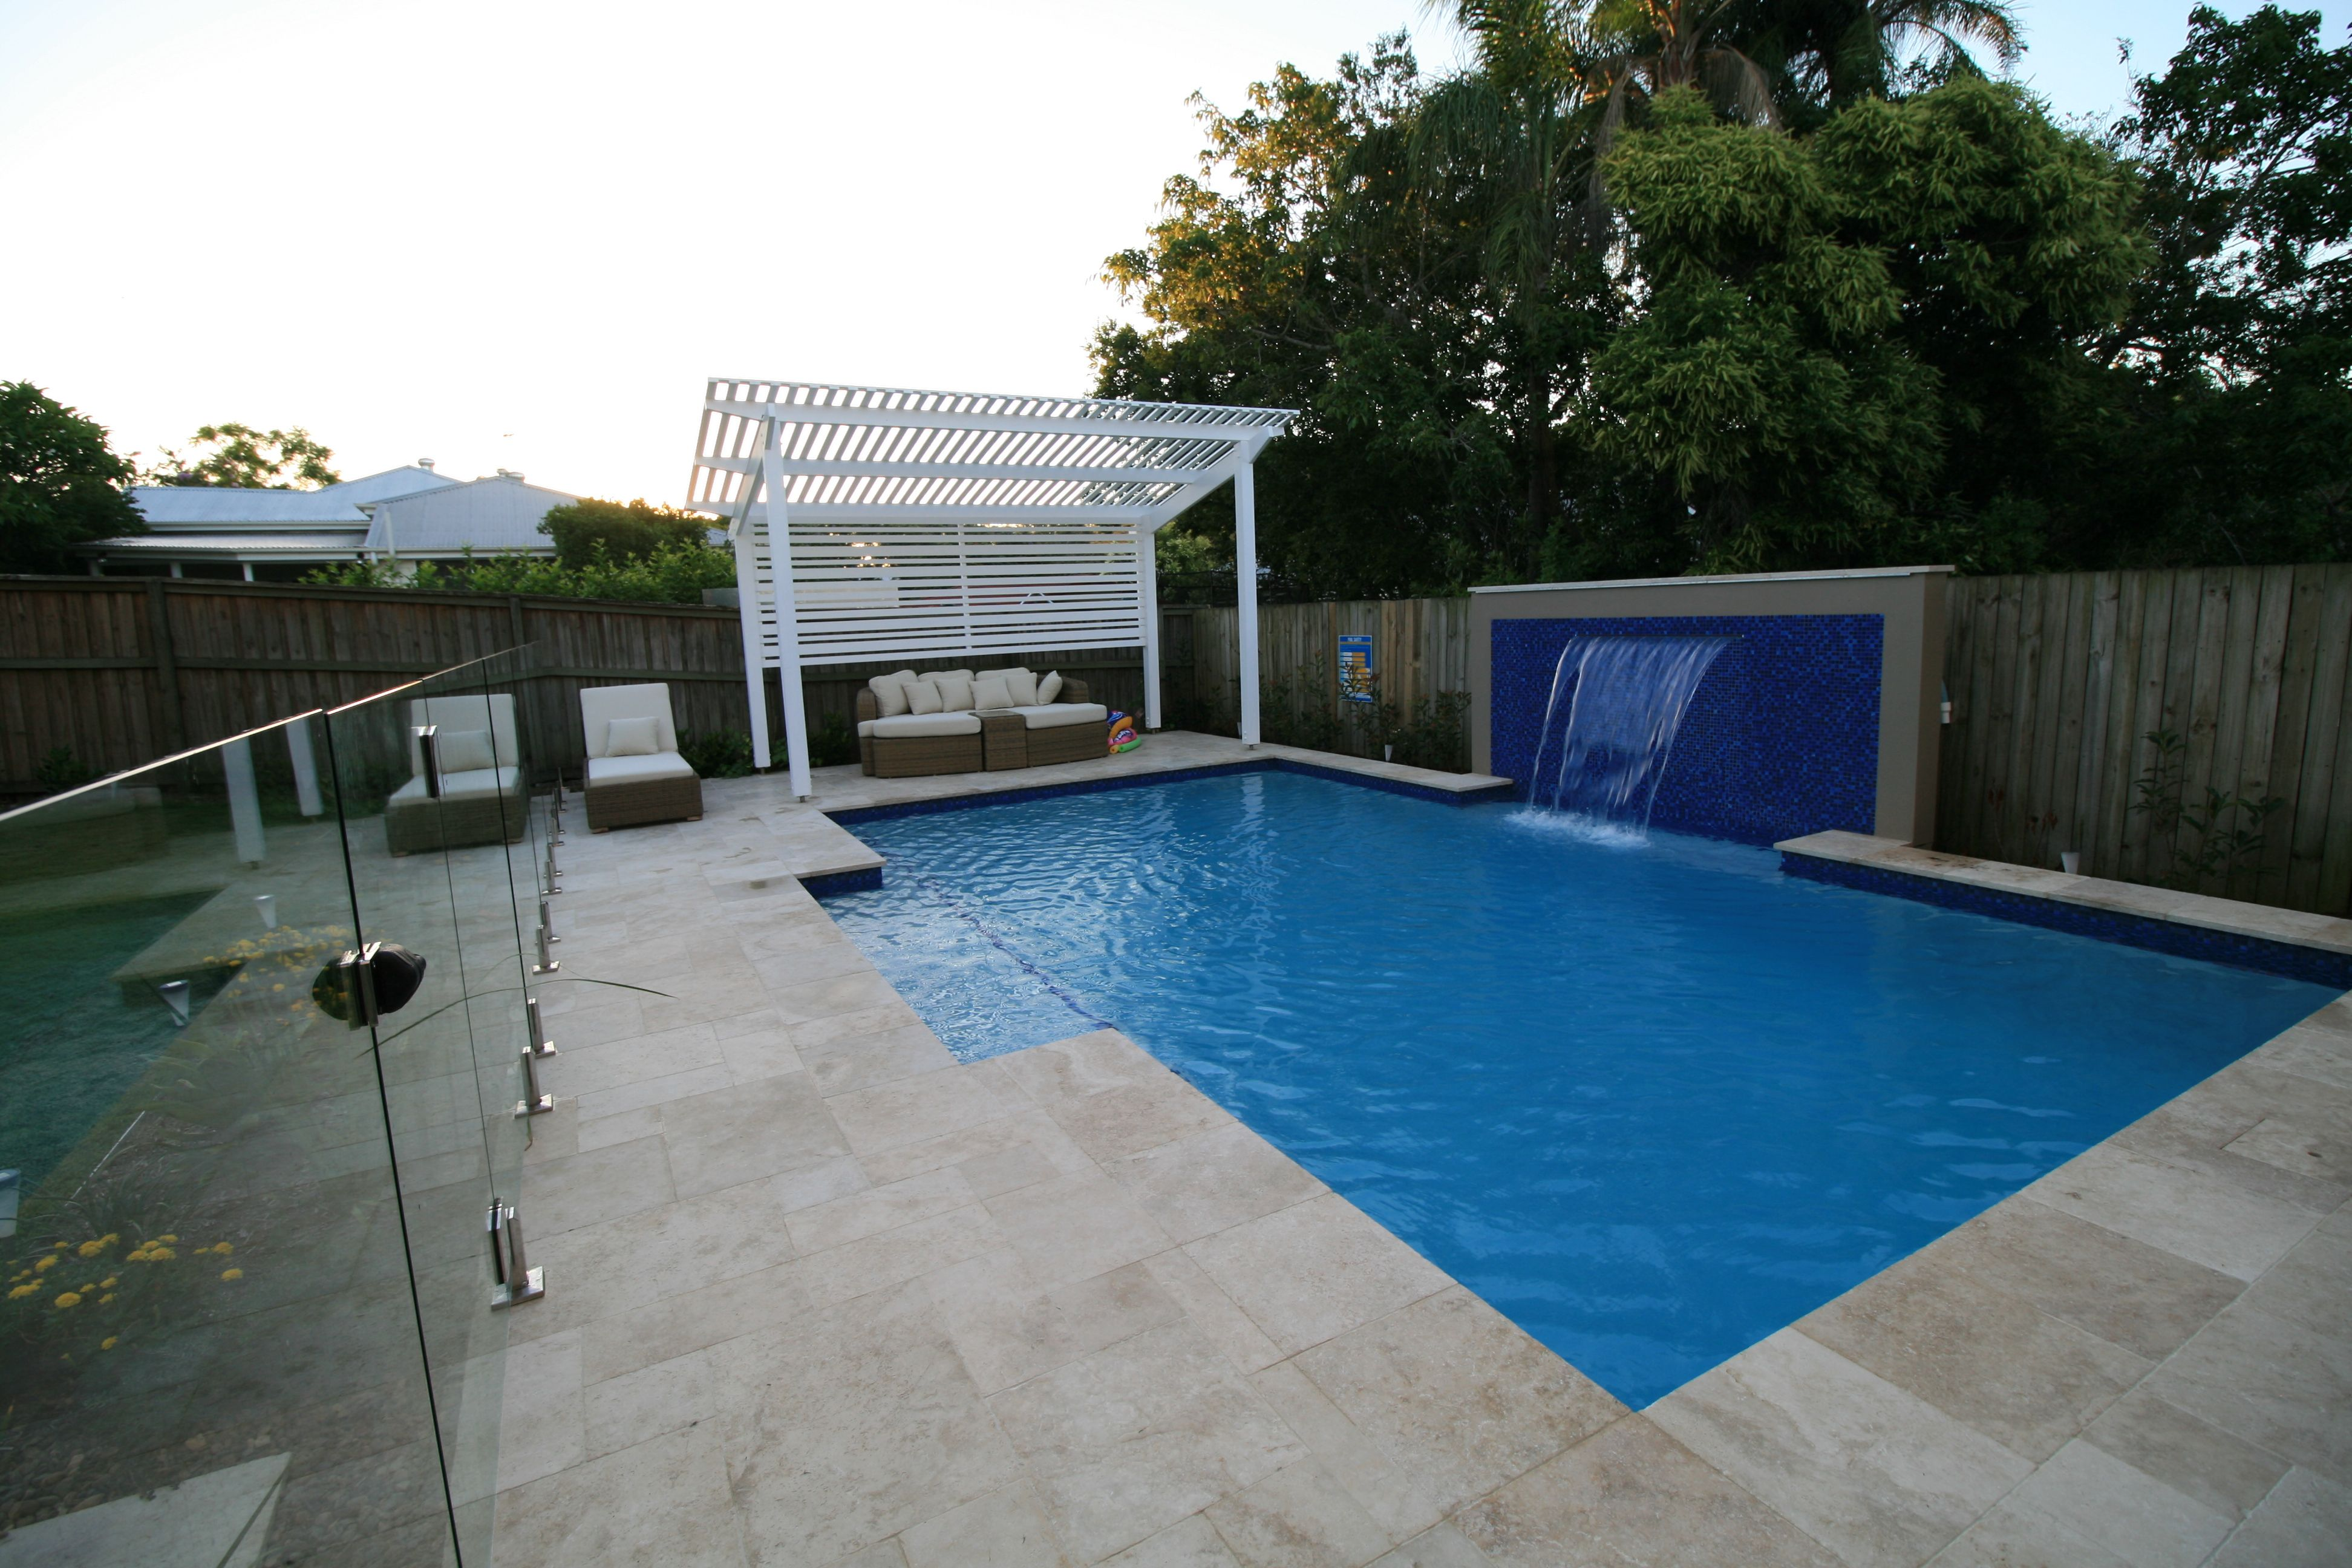 Landscape Design U0026 Construction. Swimming Pool With Sheer Decent Water  Feature, Gazebo And Landscaping. Landscape Design Brisbane; Swimming Pools  Brisbane;